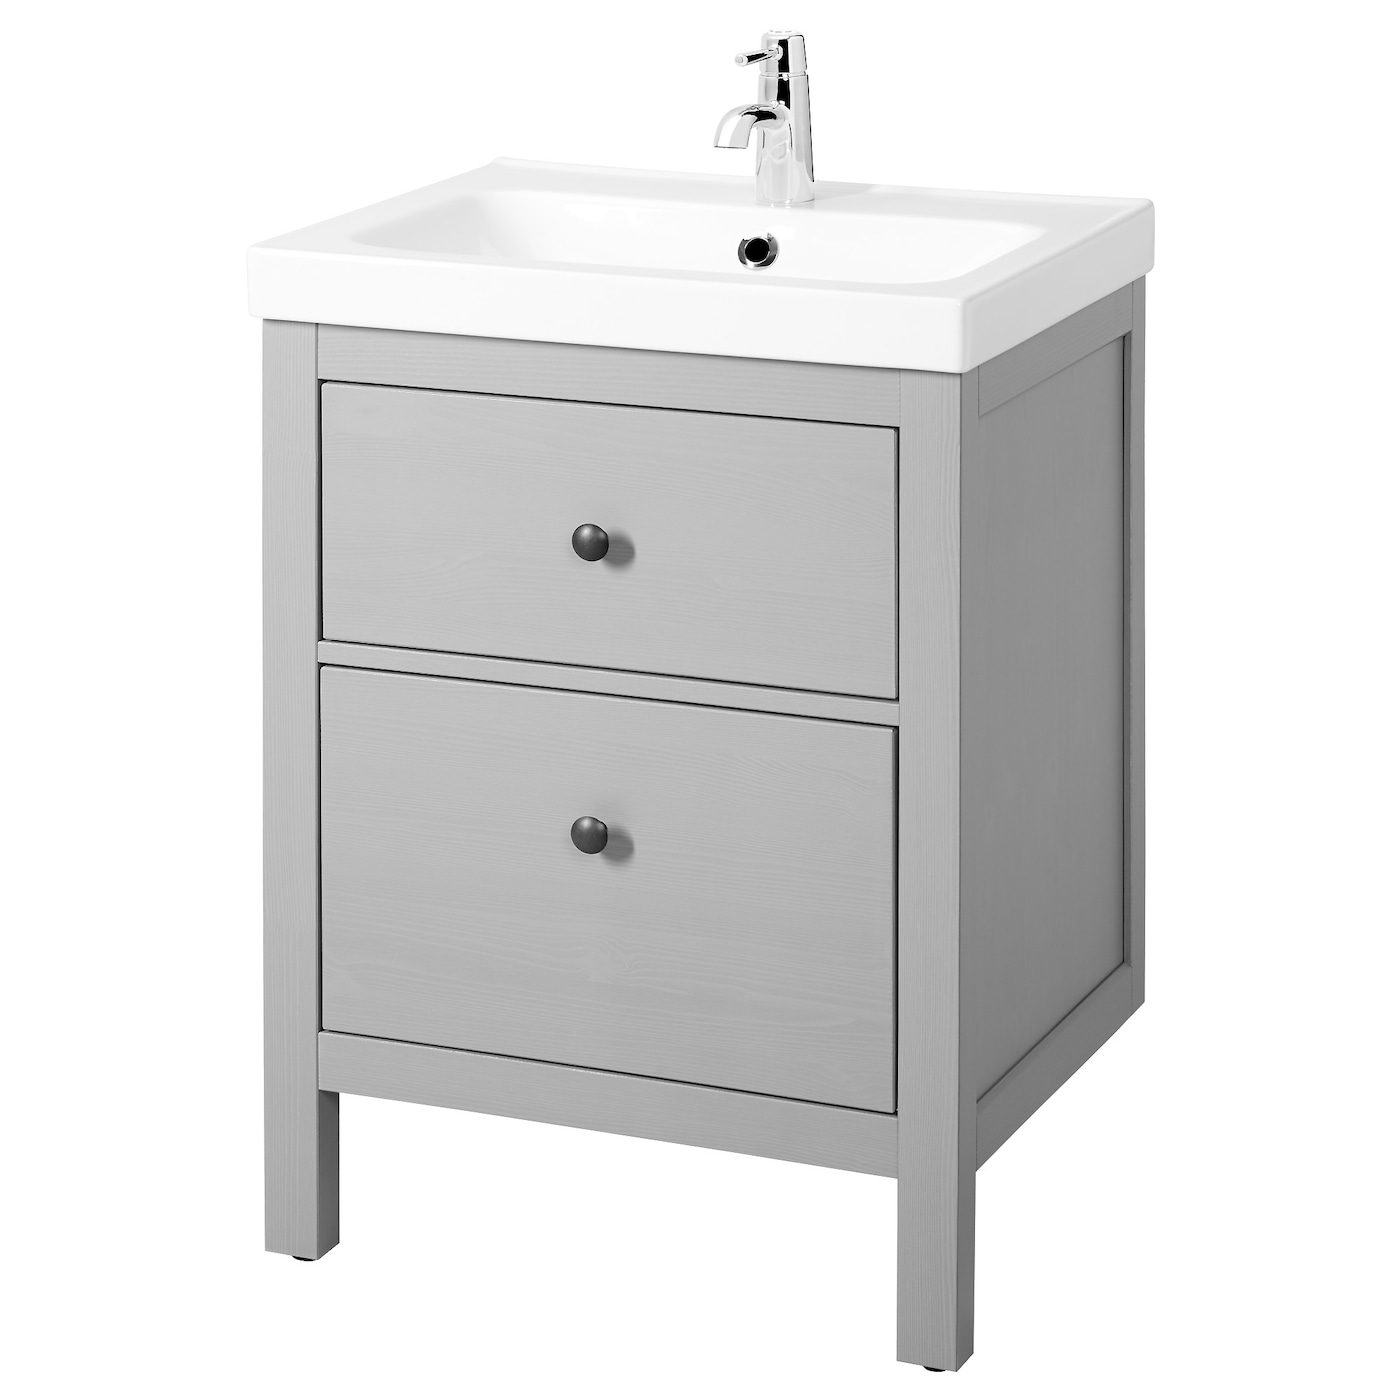 HEMNES / ODENSVIK Sink Cabinet With 2 Drawers, Gray, 24 3/4x19 1/4x35